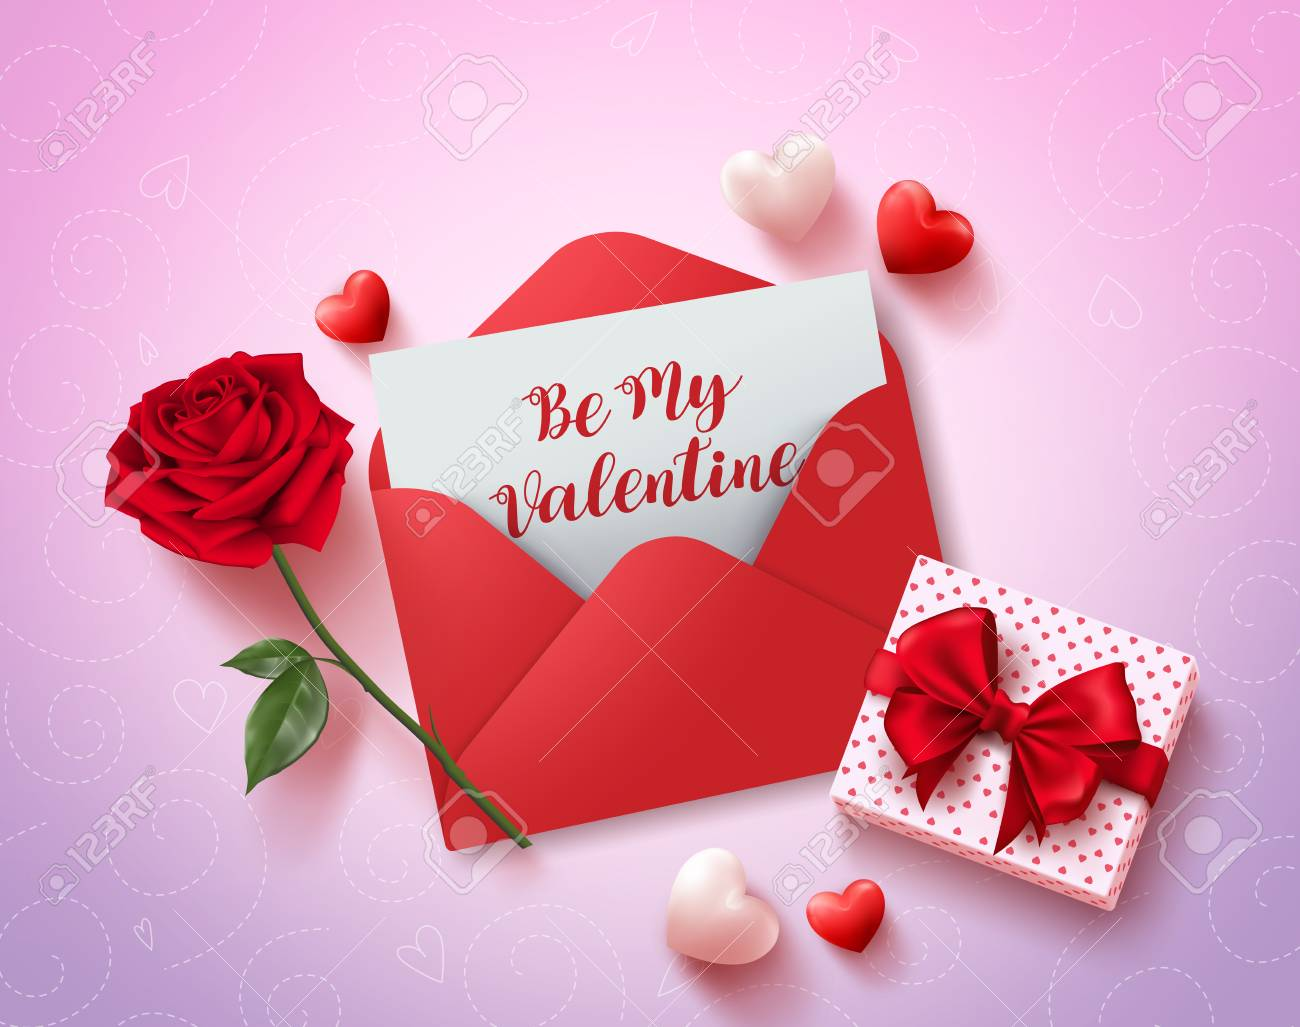 Be My Valentines Greeting Card Vector Design With Red Love Letter